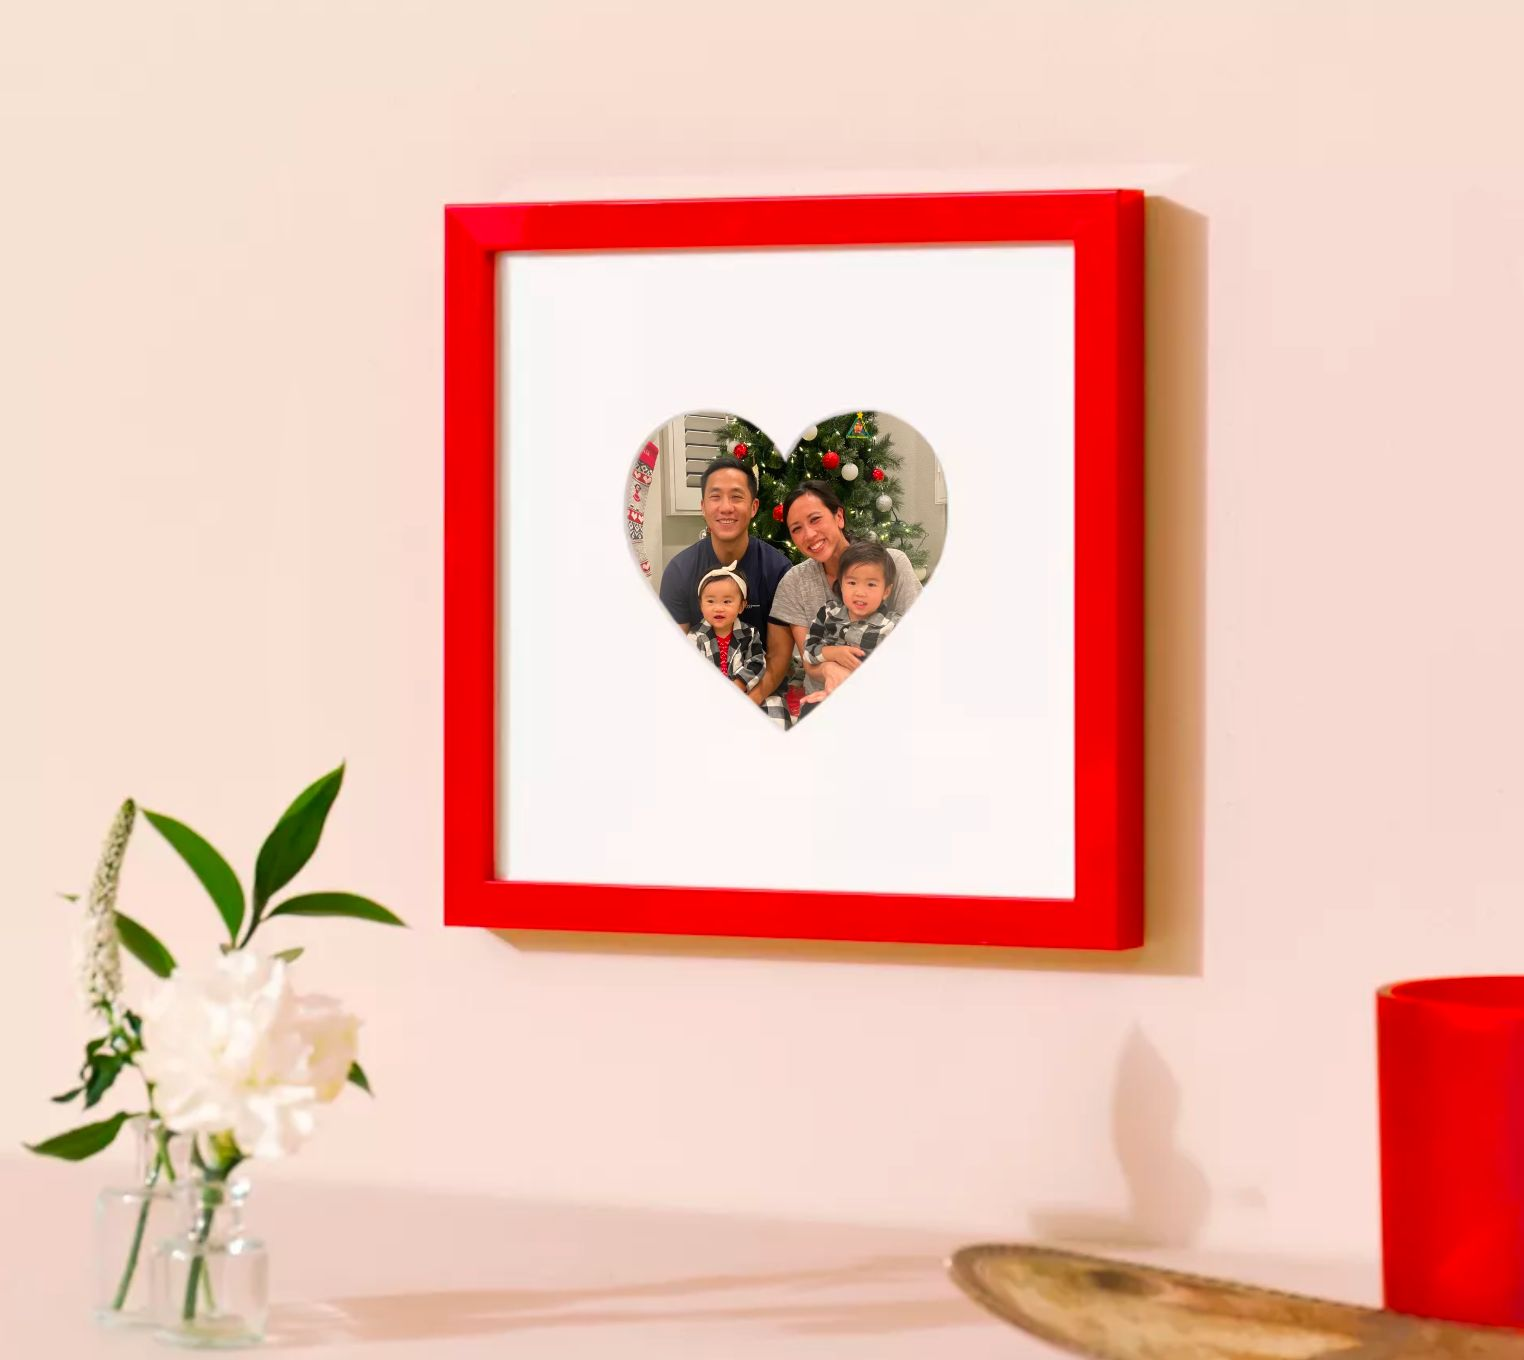 red frame with heartshaped mat and photo of cute family